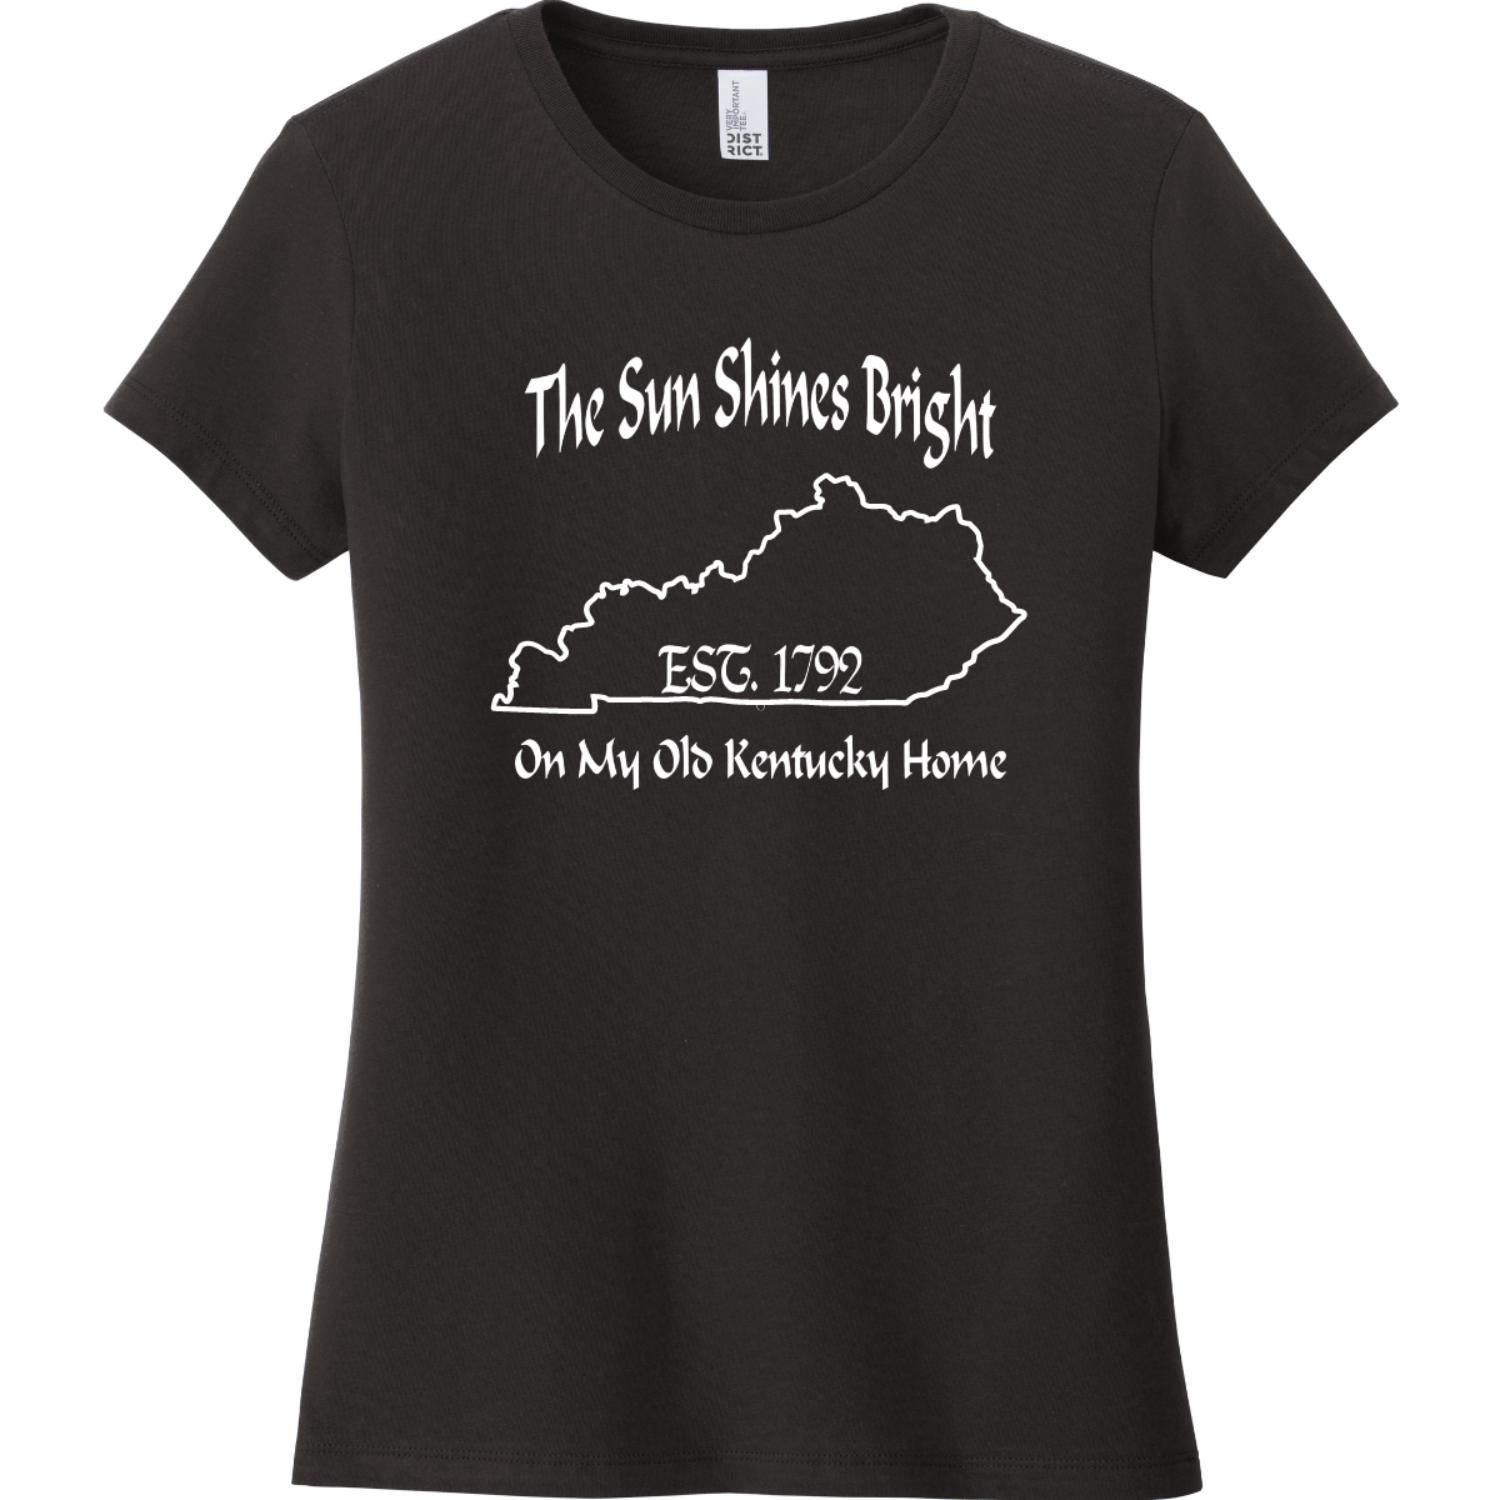 The Sun Shines Bright On My Old Kentucky Home T Shirt Black District Women's Very Important Tee DT6002